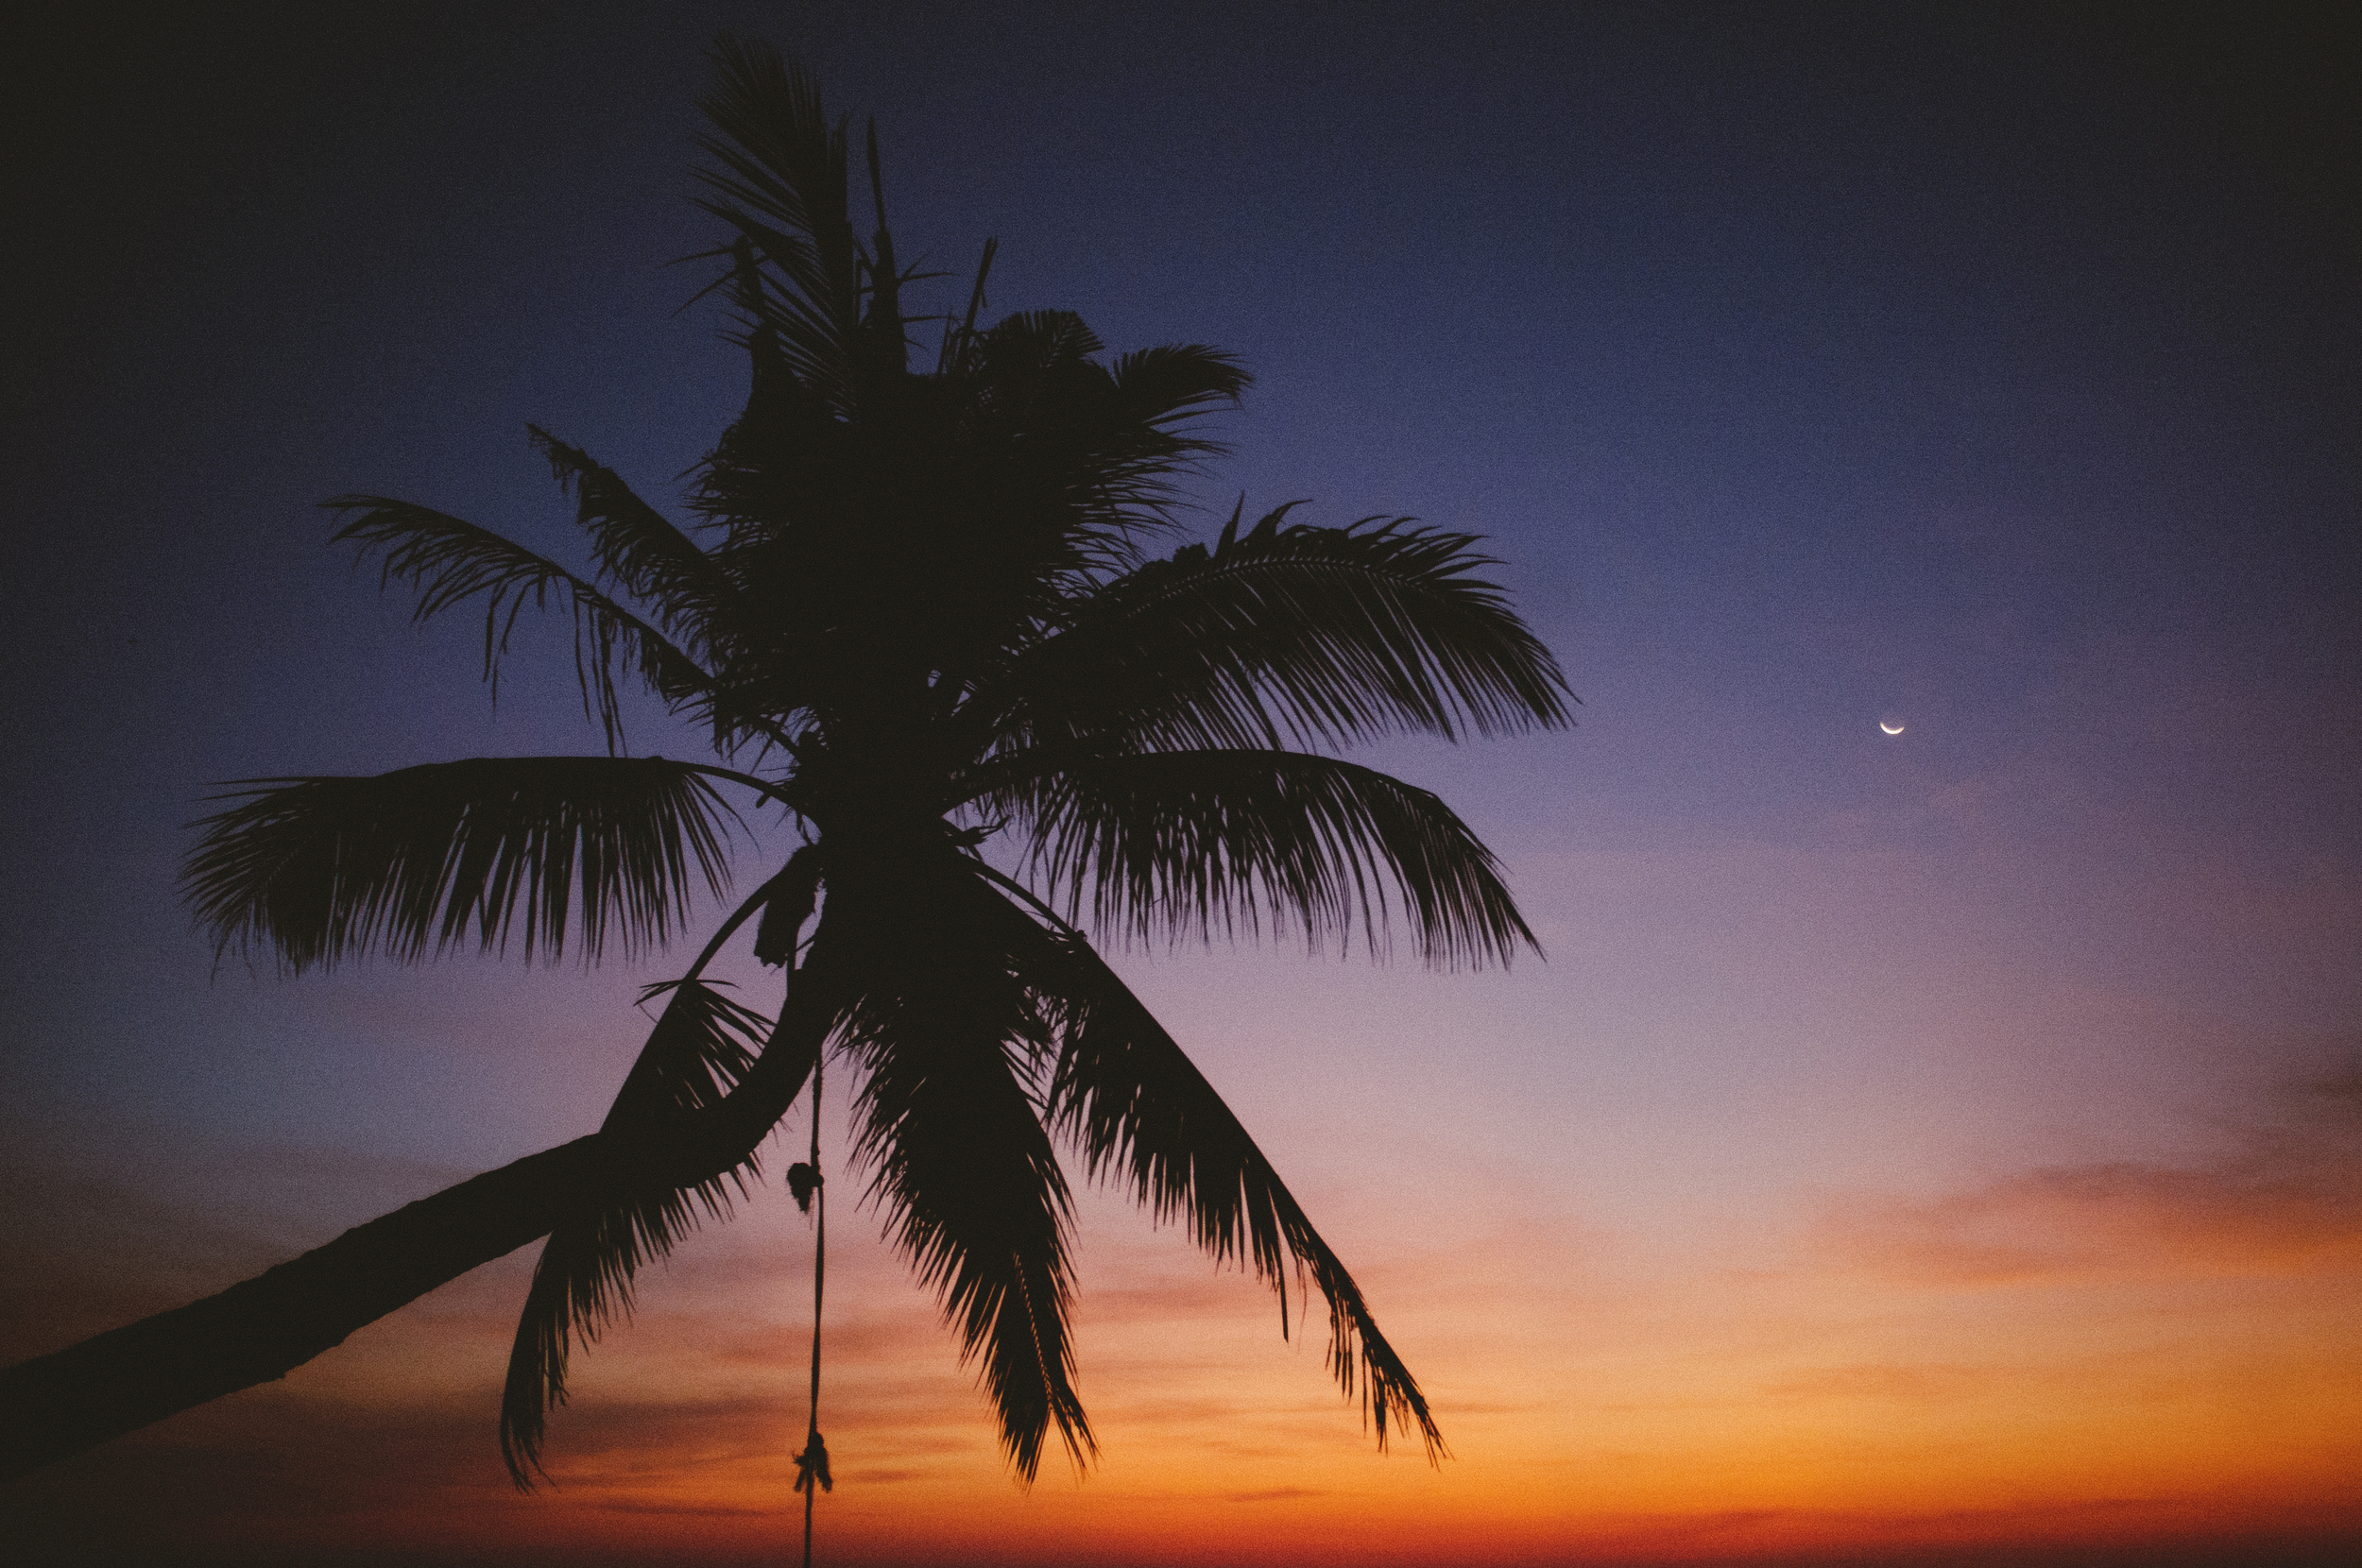 Koh Tao Palm Tree Sunset.jpg